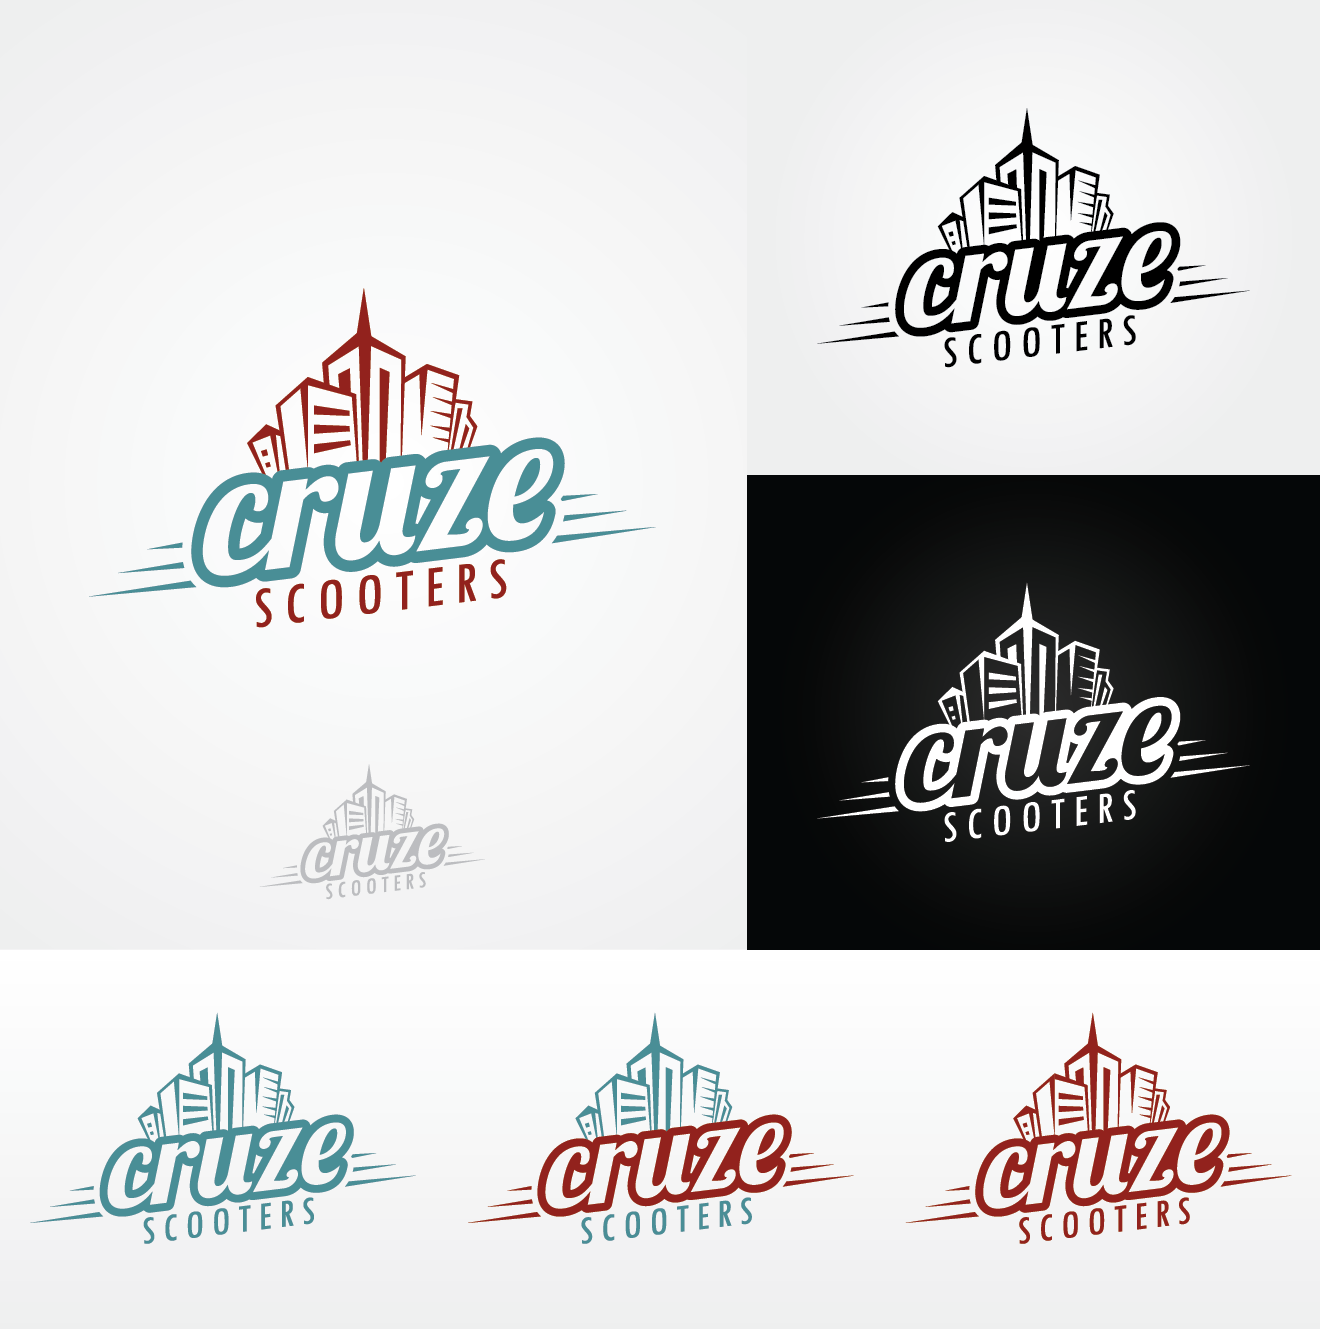 Help Cruze Scooters with a new logo